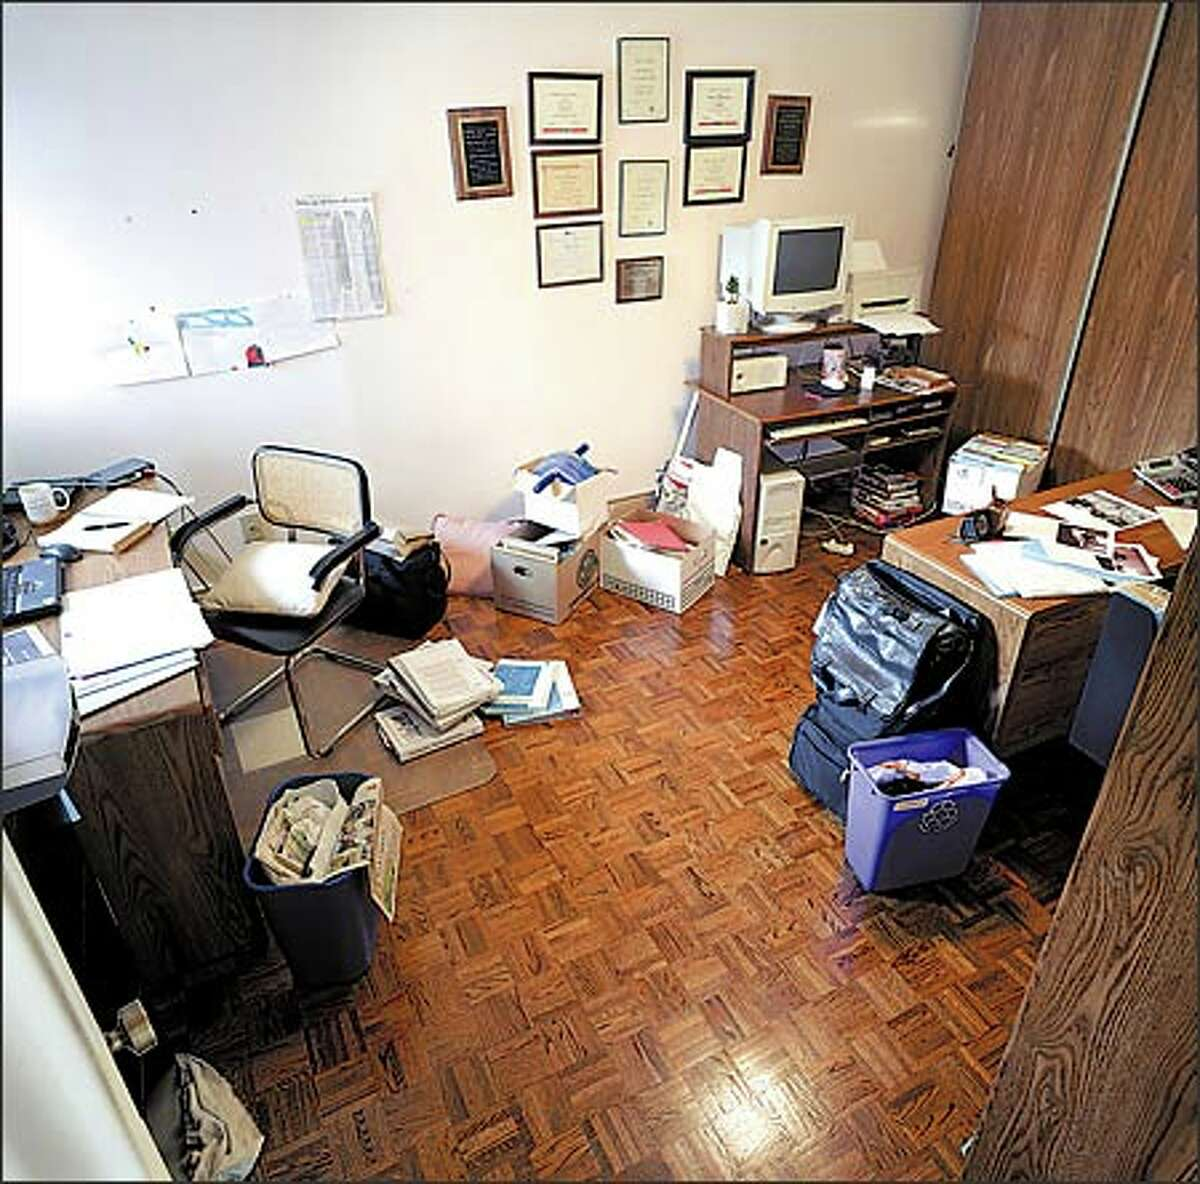 This dull, dim, cluttered workspace was a wasteland of castoff furniture, low lighting and boxes of papers.